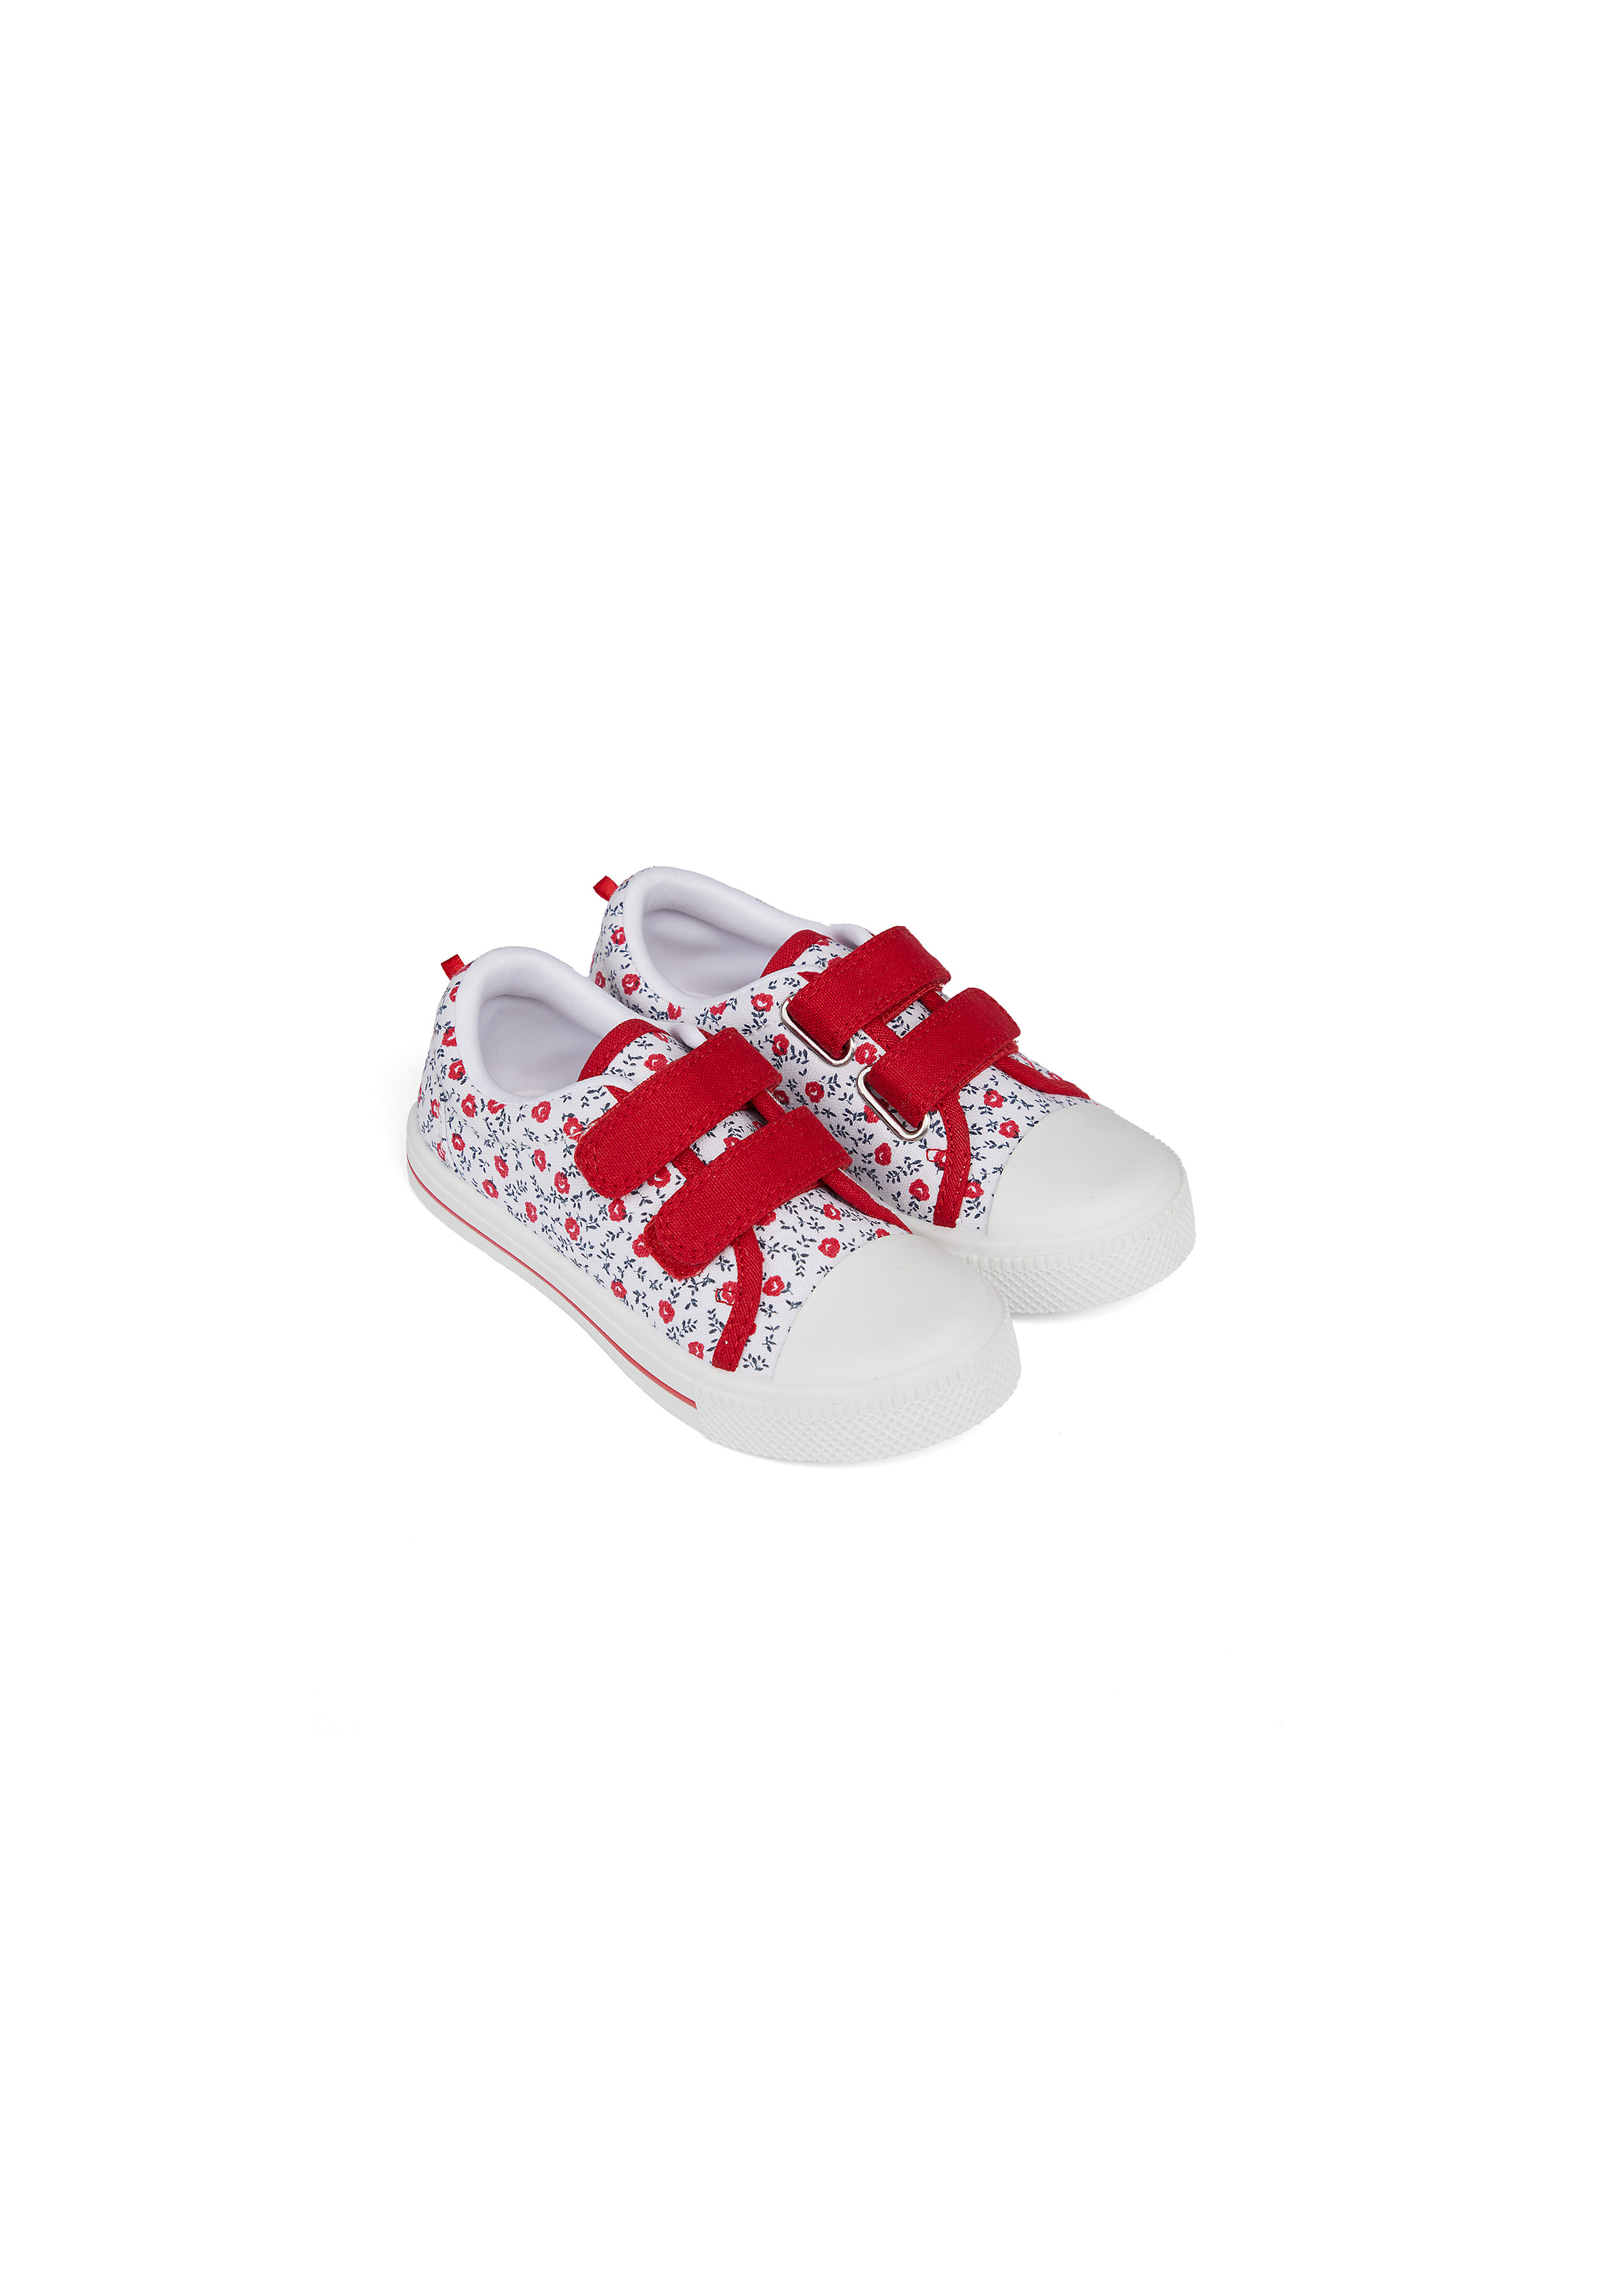 Mothercare | Girls Canvas Shoes Floral Print - Red